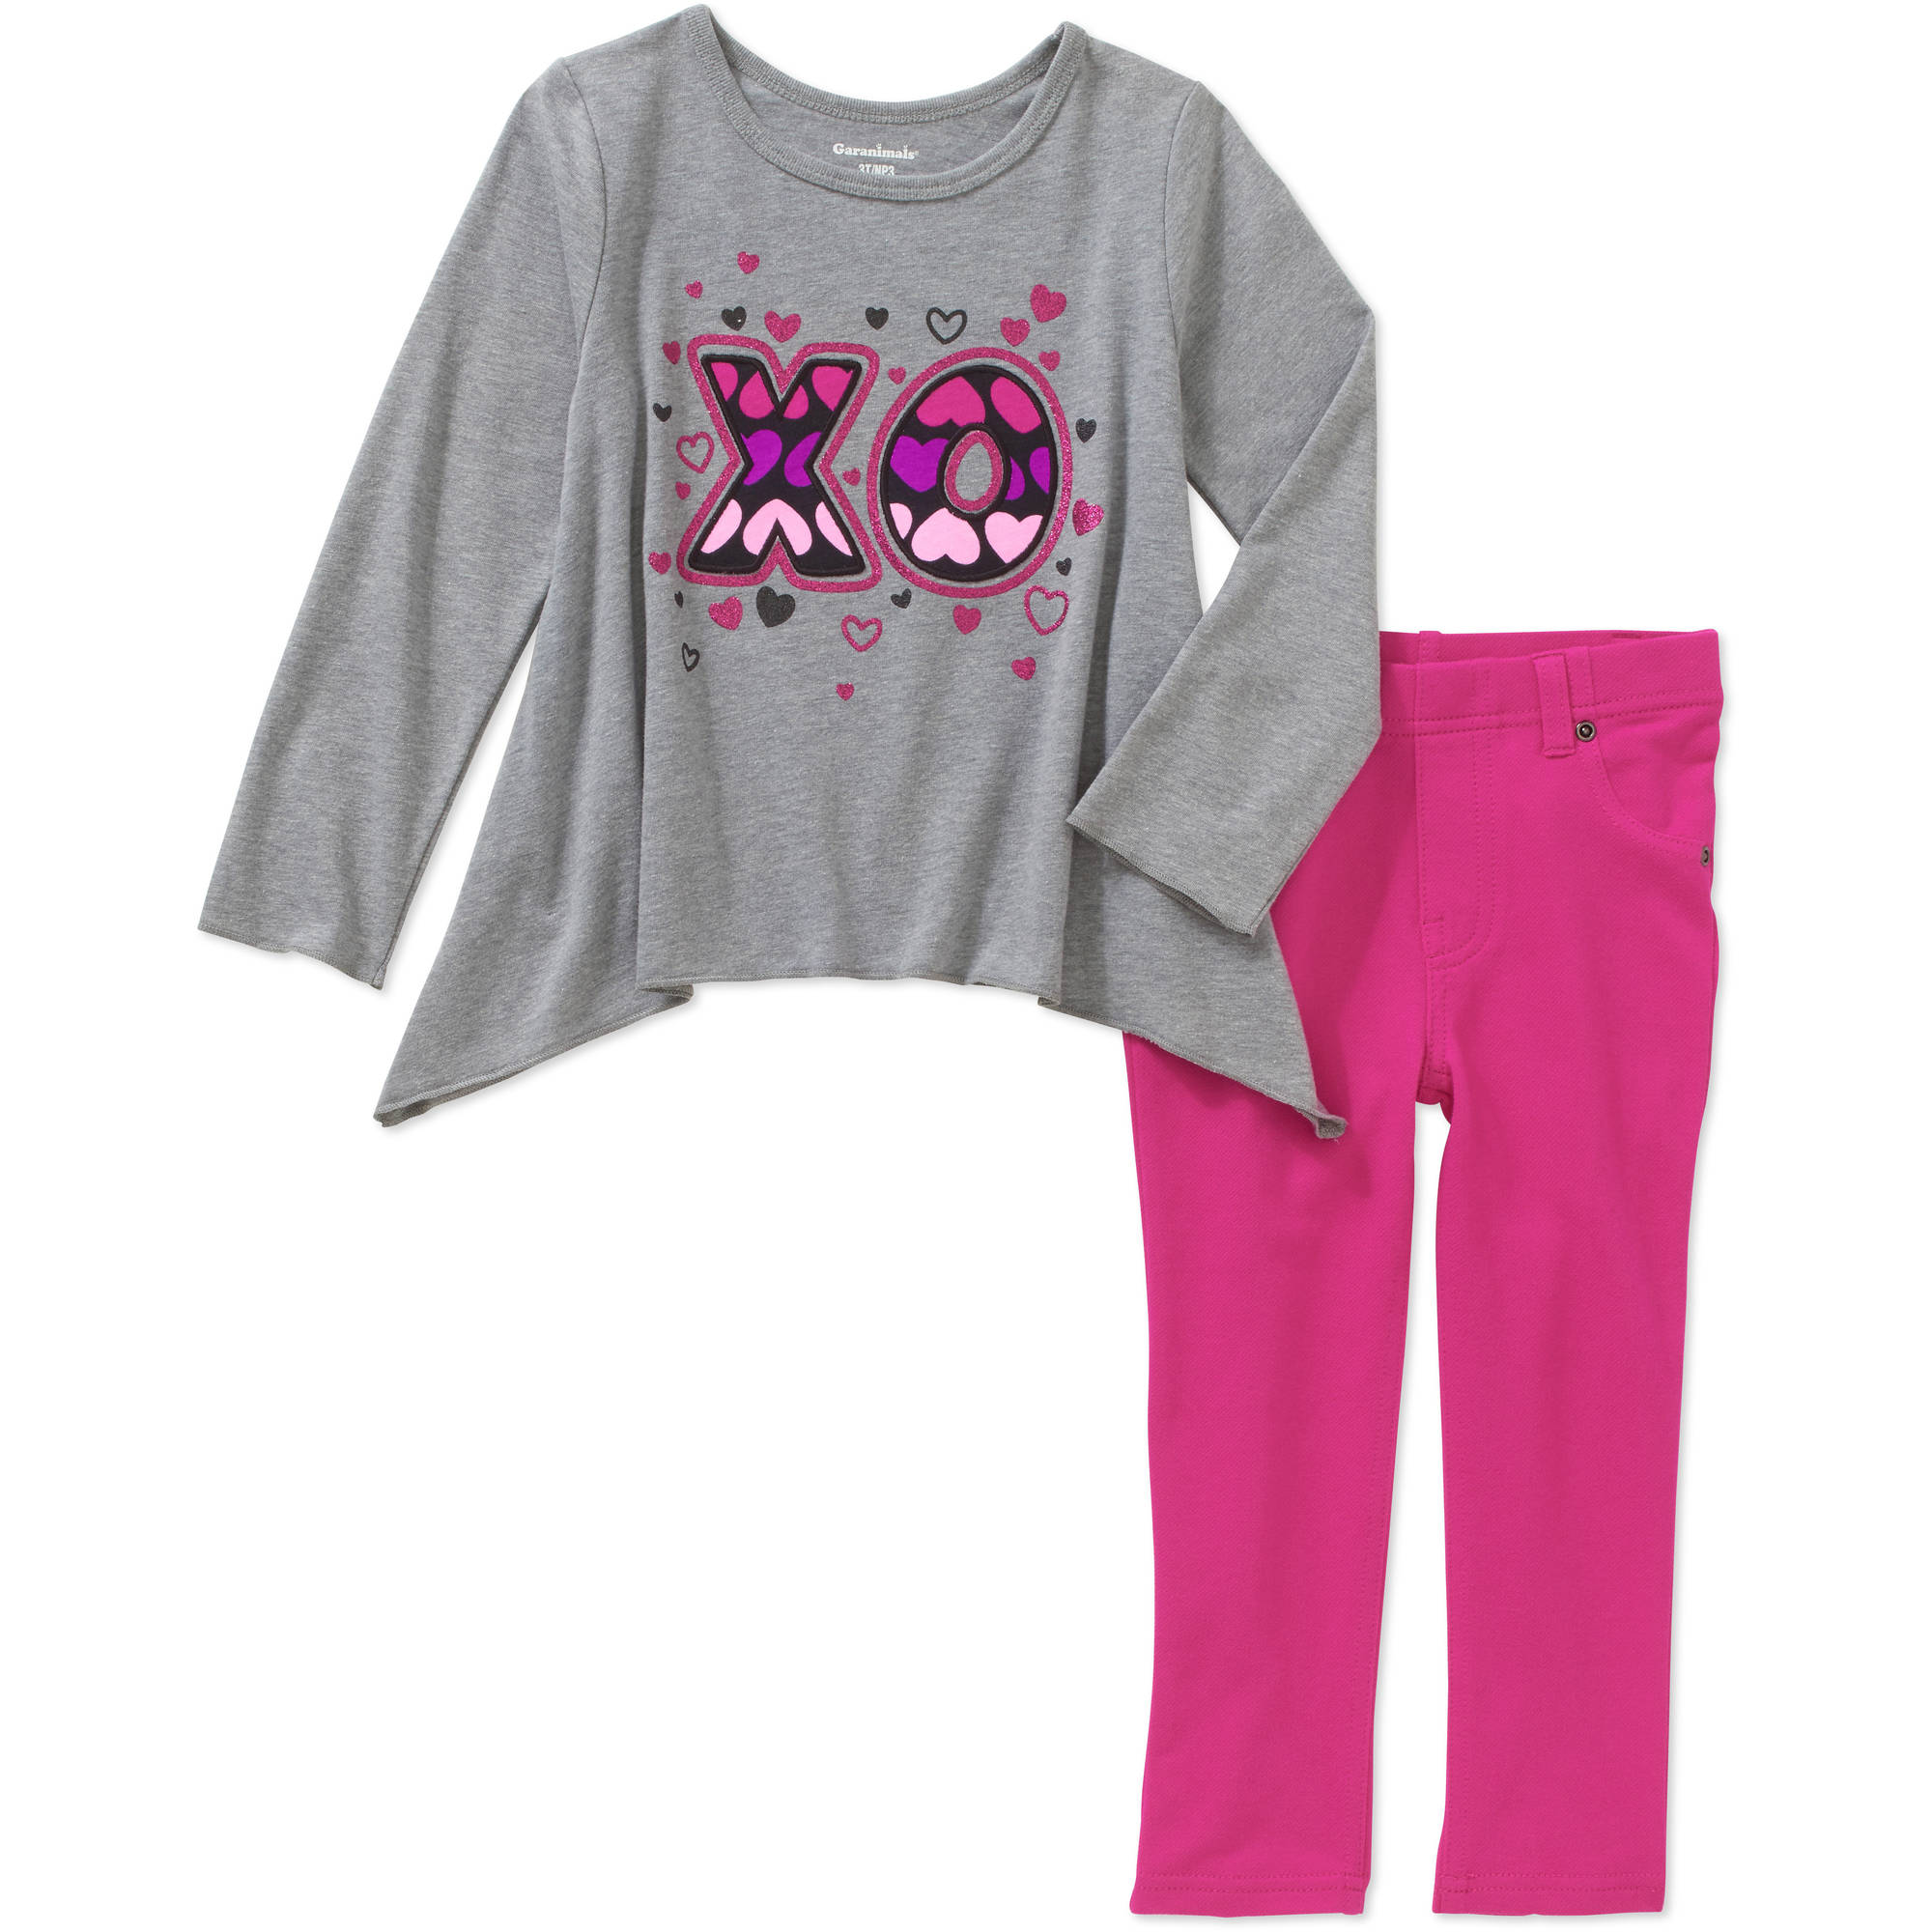 Garanimals Baby Toddler Girls' Long Sleeve Sharkbite Tee and Solid Jeggings 2-Piece Set